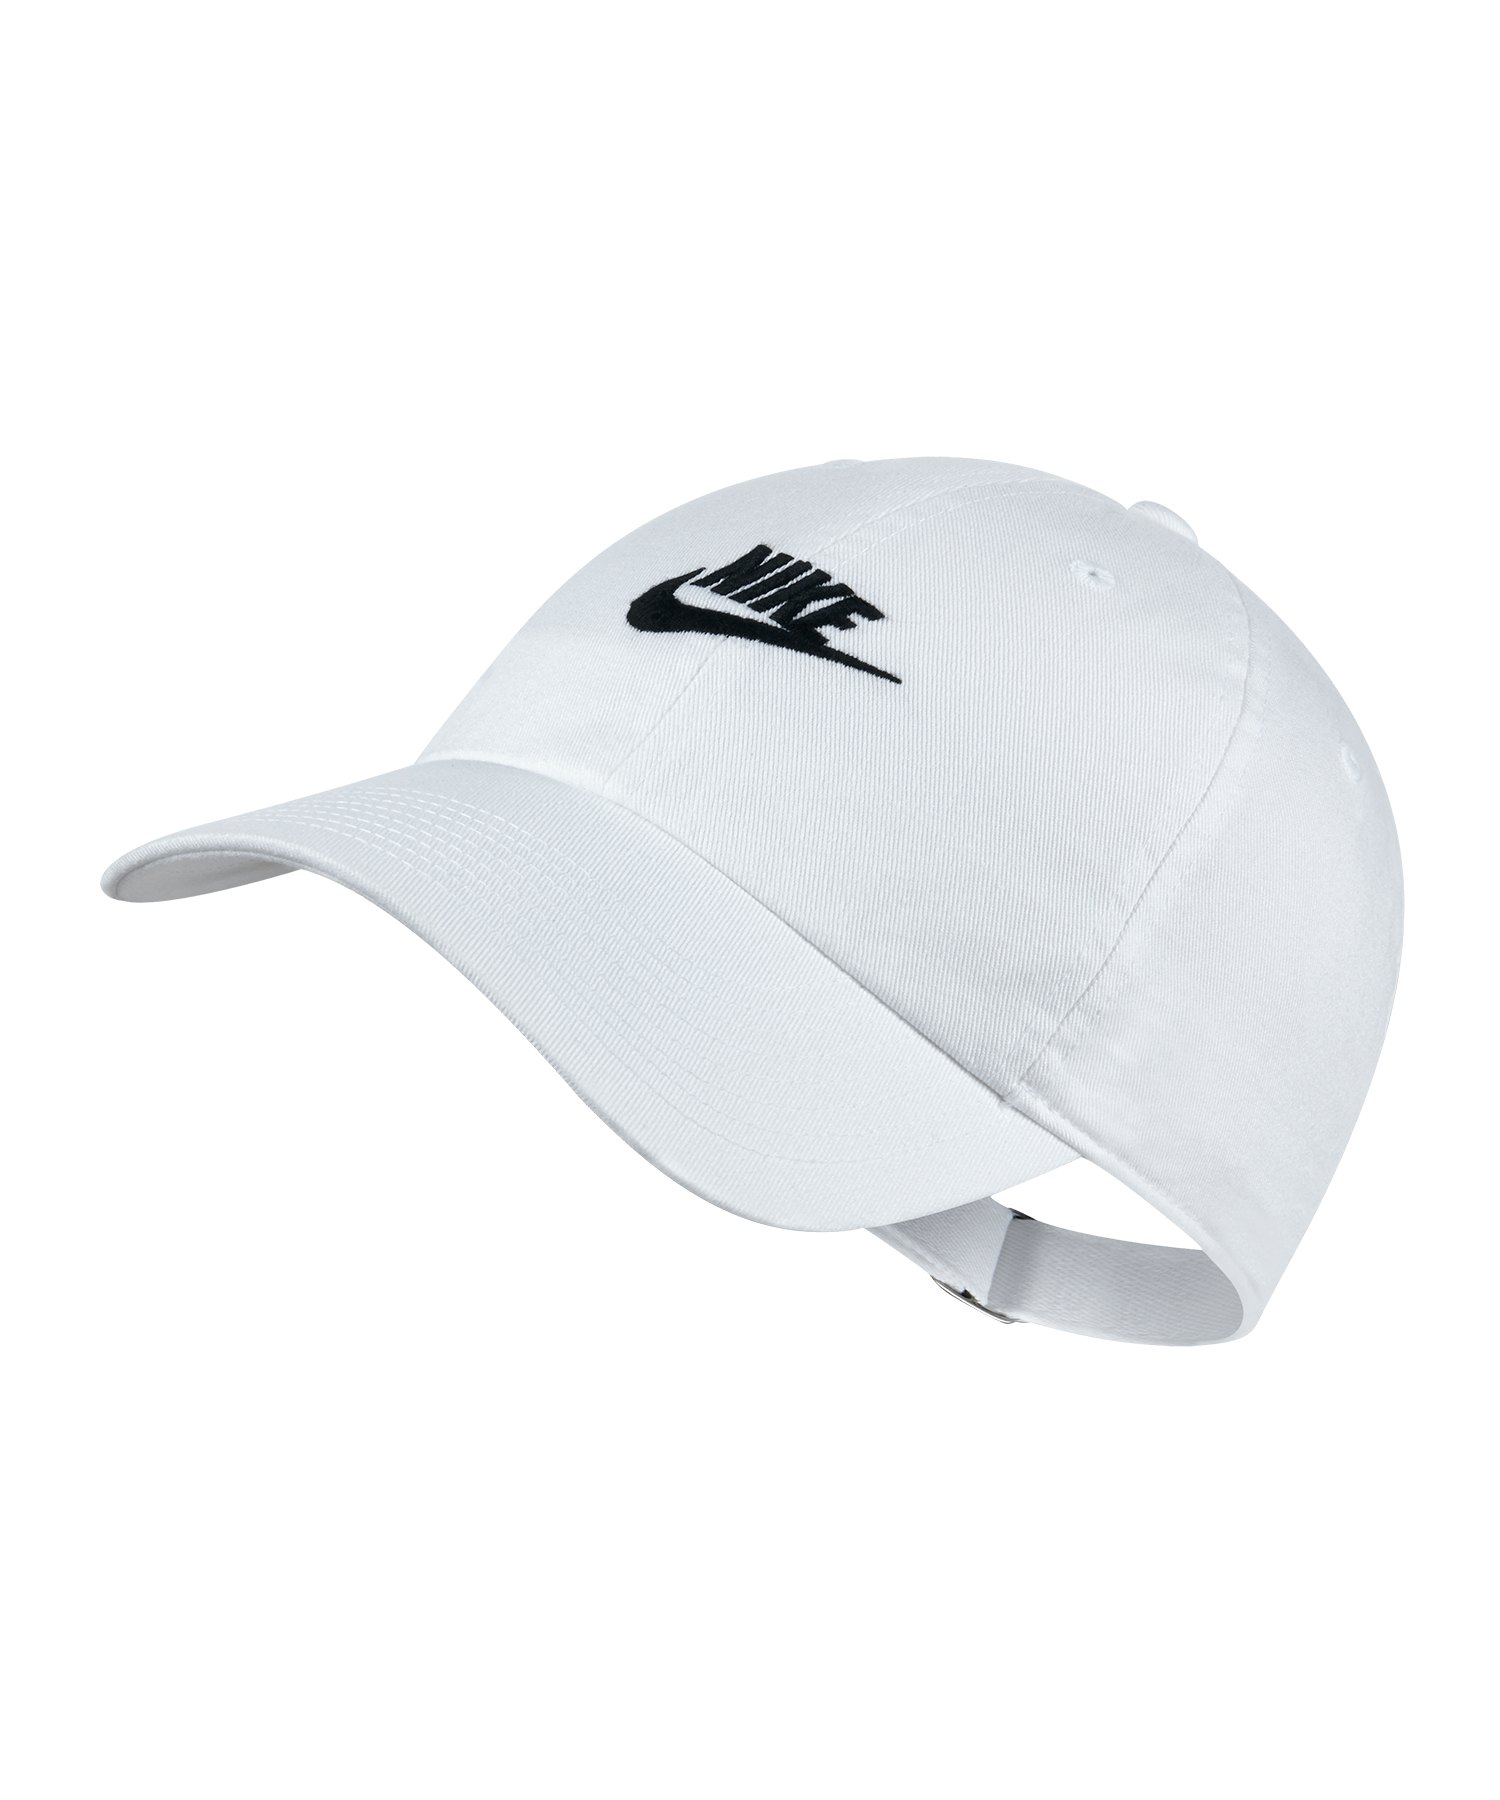 Nike Heritage 86 Washed Cap Kappe Weiss F100 - Weiss